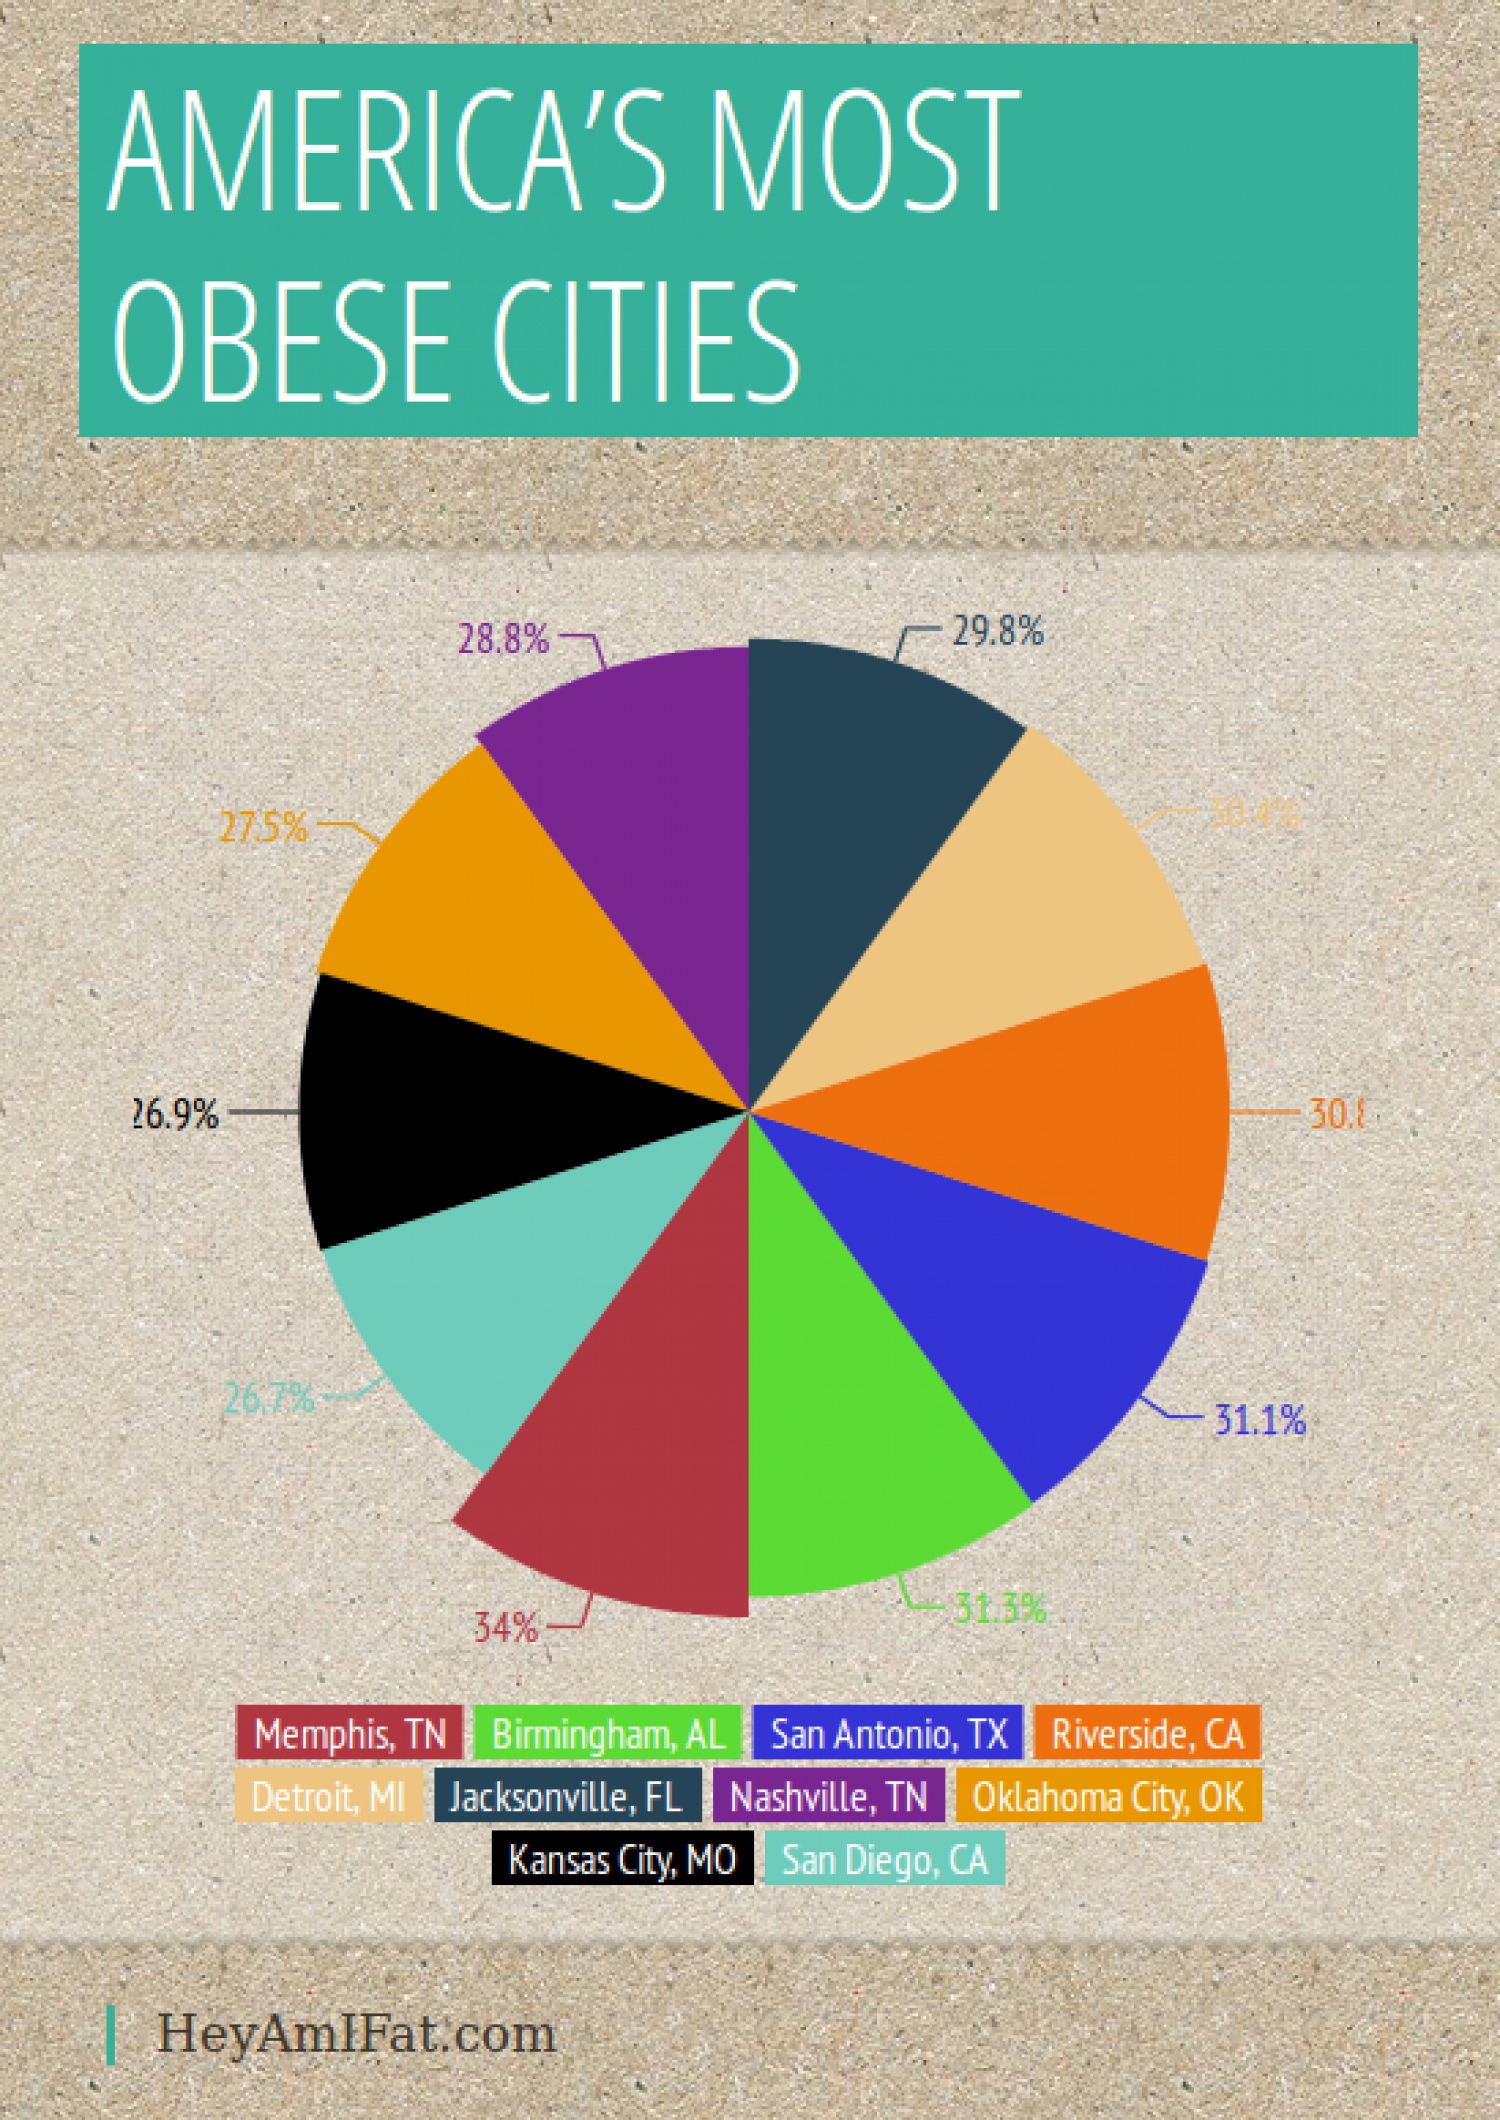 Americas Most Obese Cities Infographic